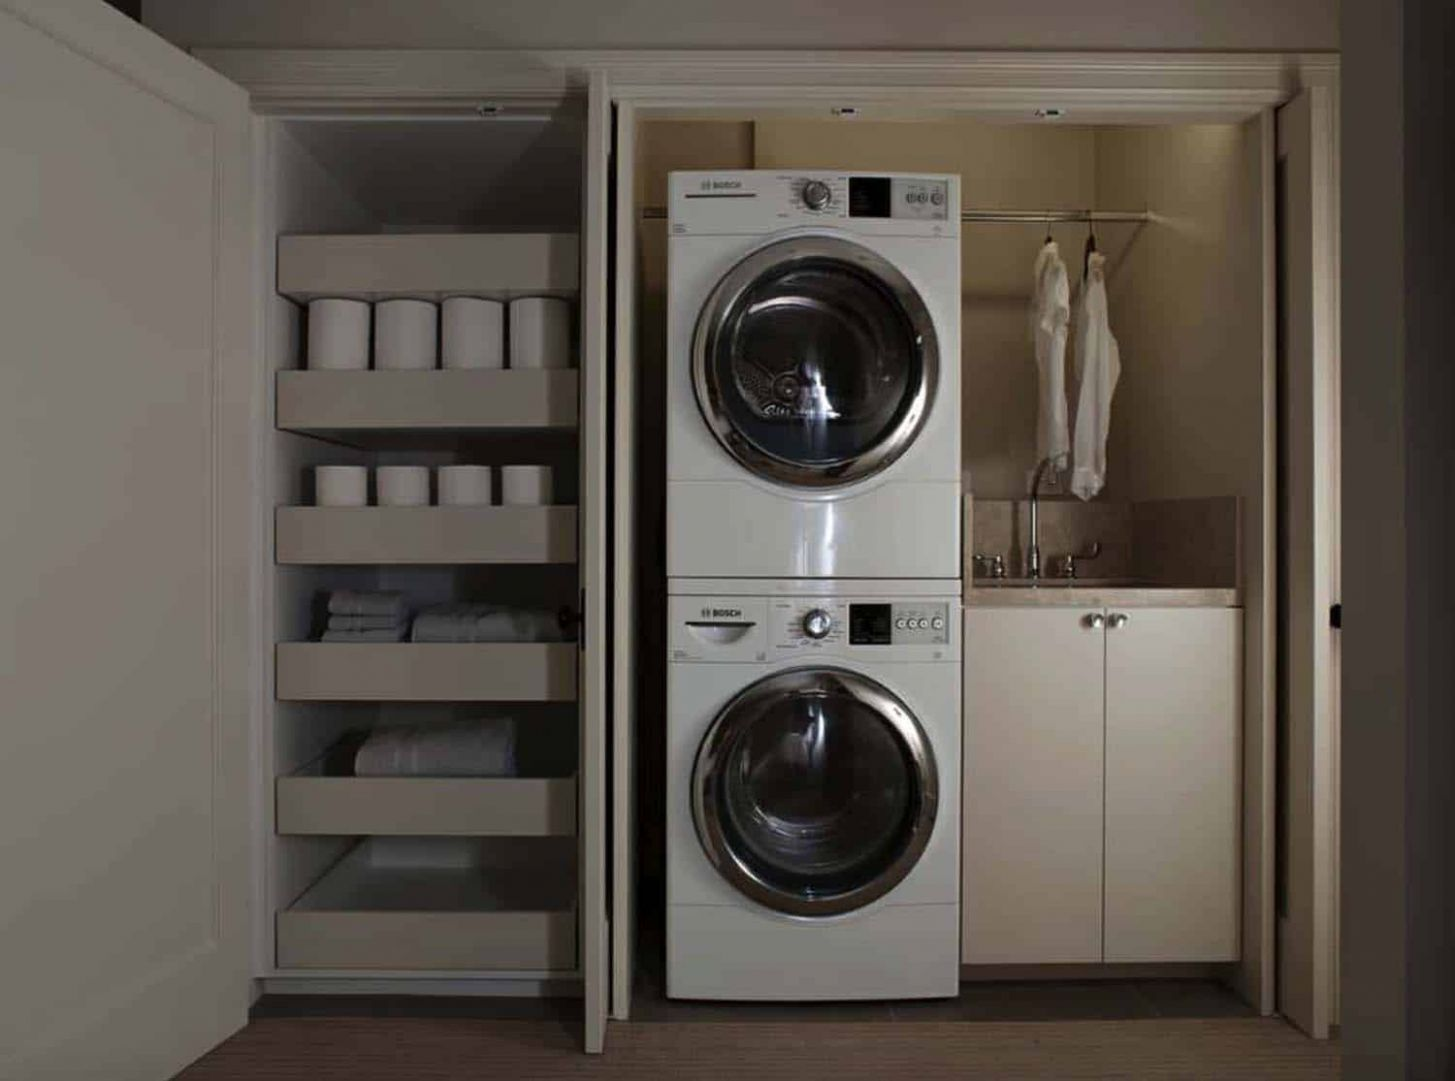 11 Functional And Stylish Laundry Room Design Ideas To Inspire - laundry room alcove ideas